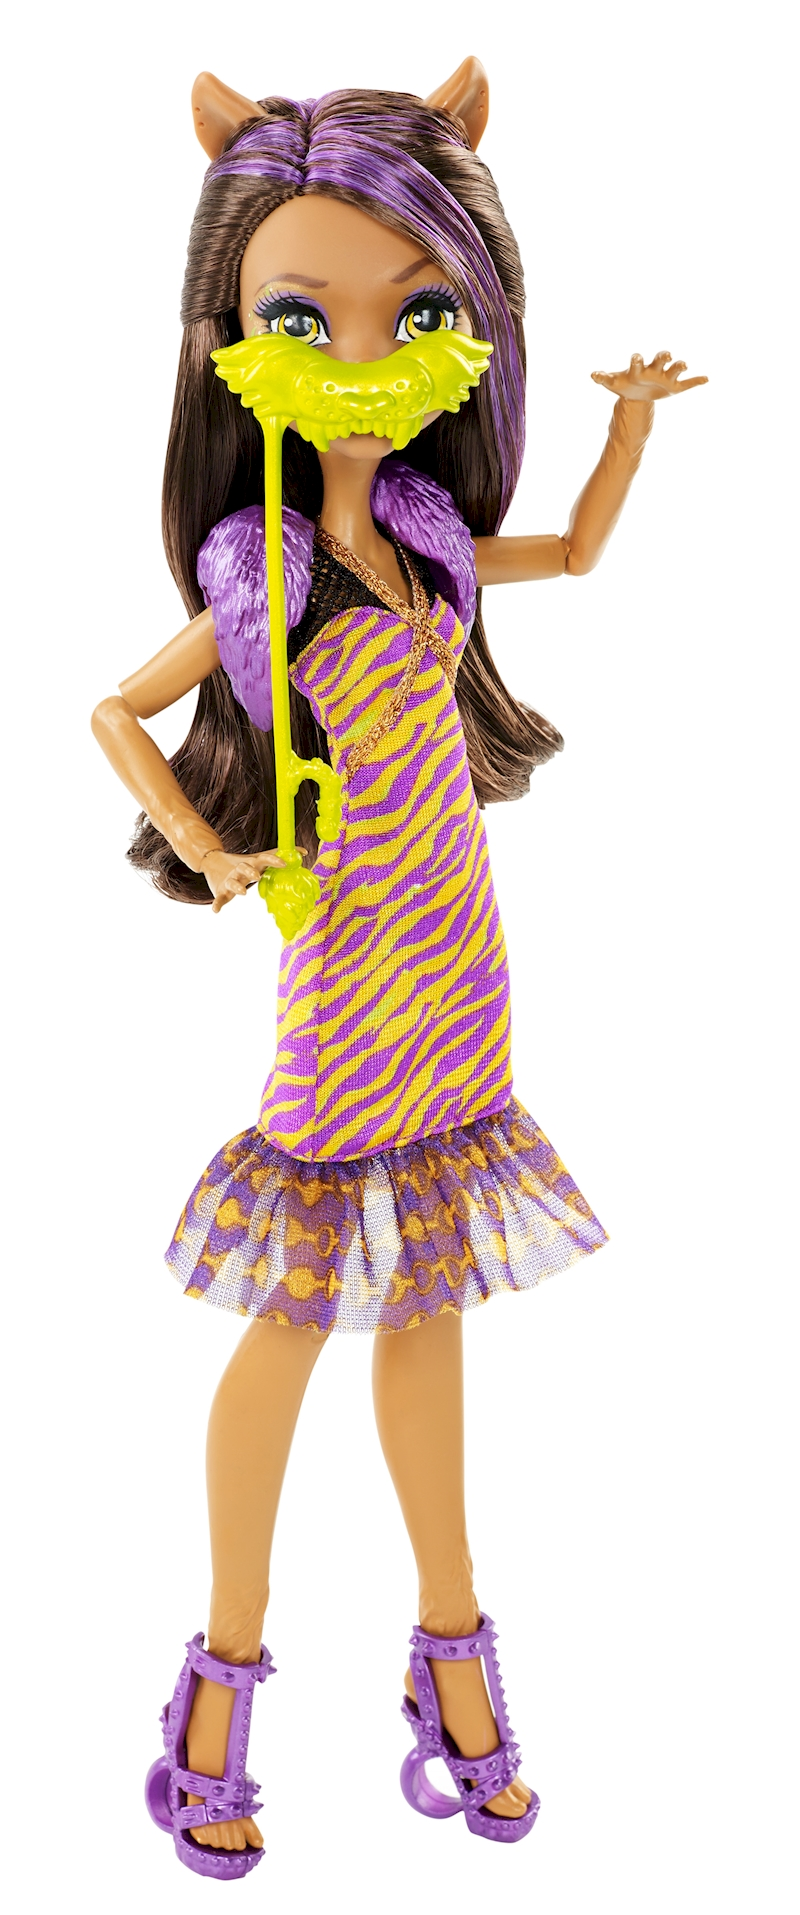 MONSTER HIGH WELCOME TO MONSTER HIGH CLAWDEEN WOLF DOLL  Shop